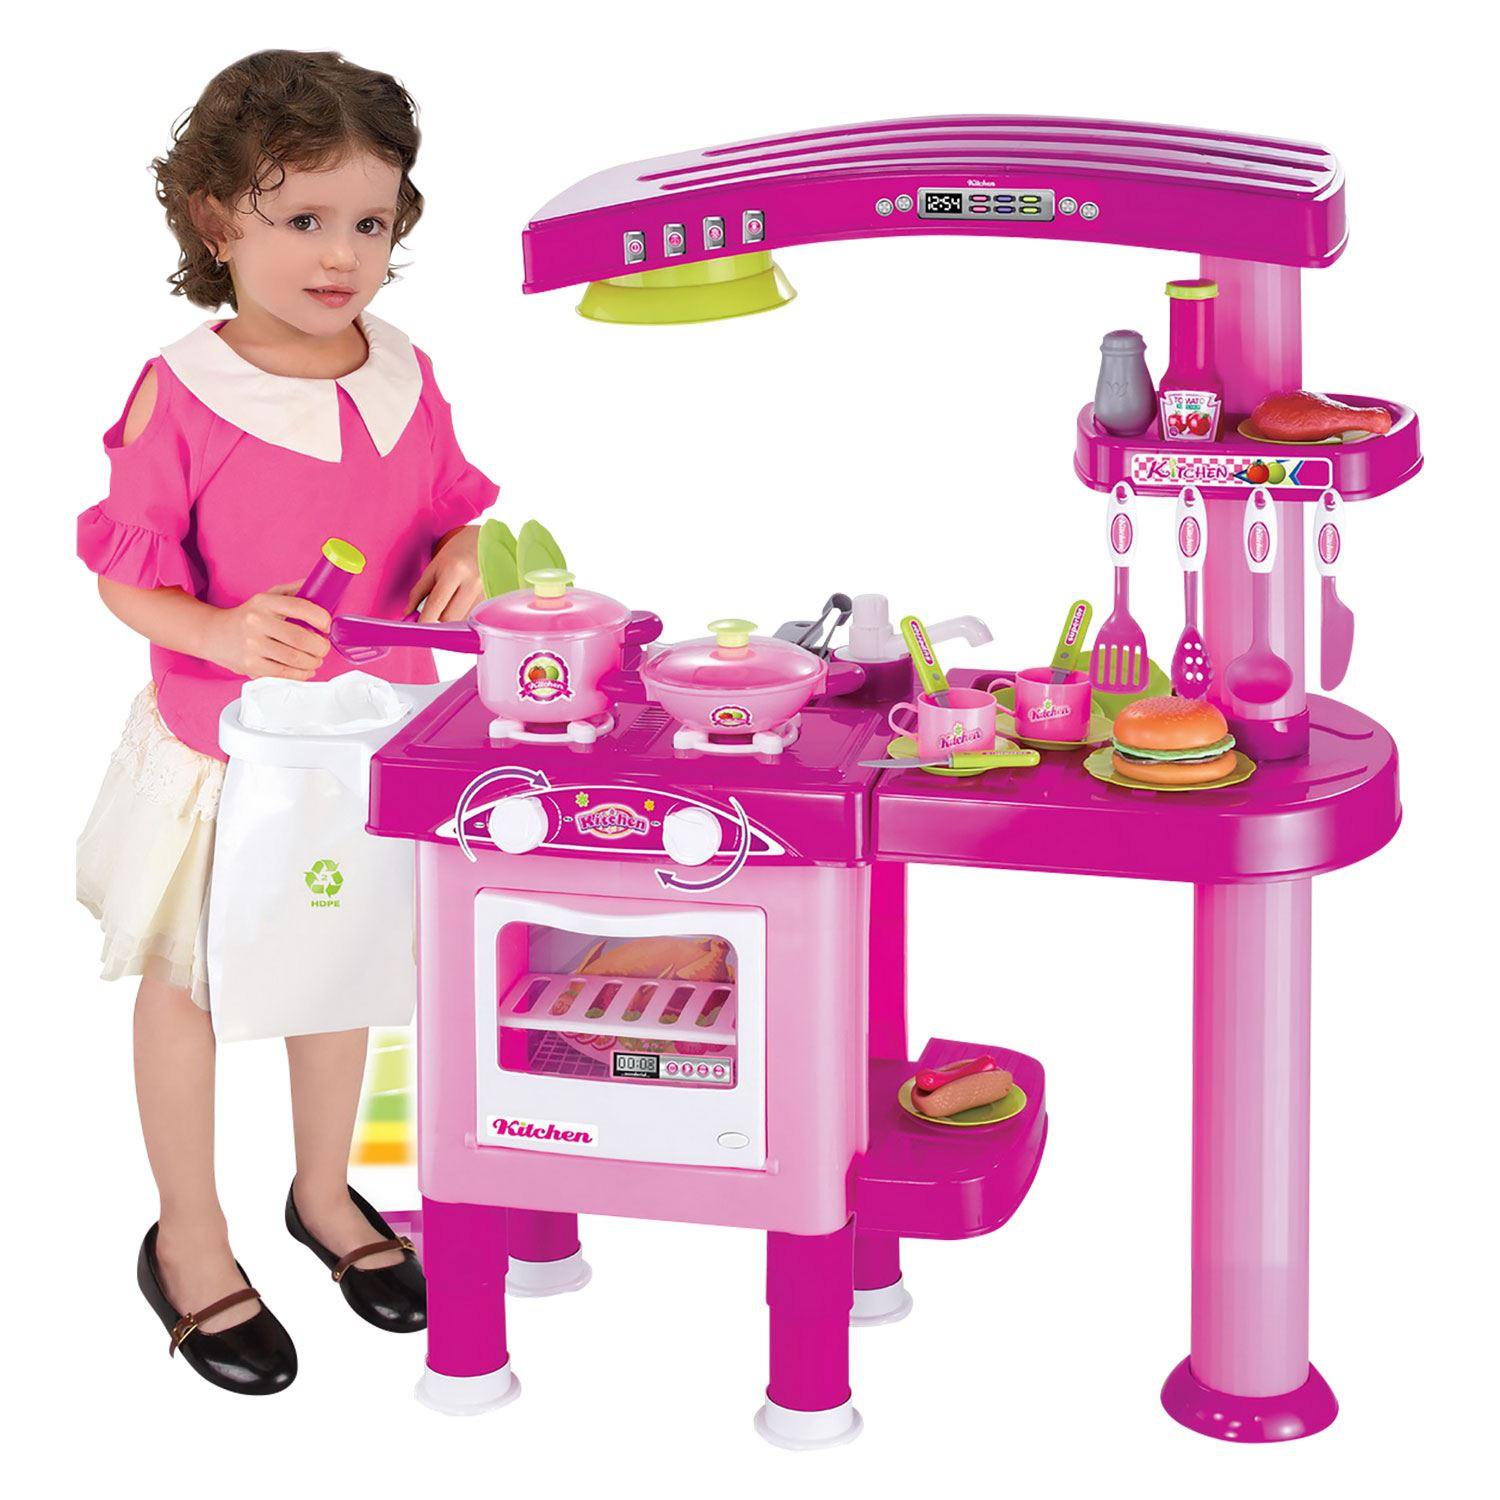 Cooking Toys For Boys : Boys girls childrens kids kitchen play set pretend toy